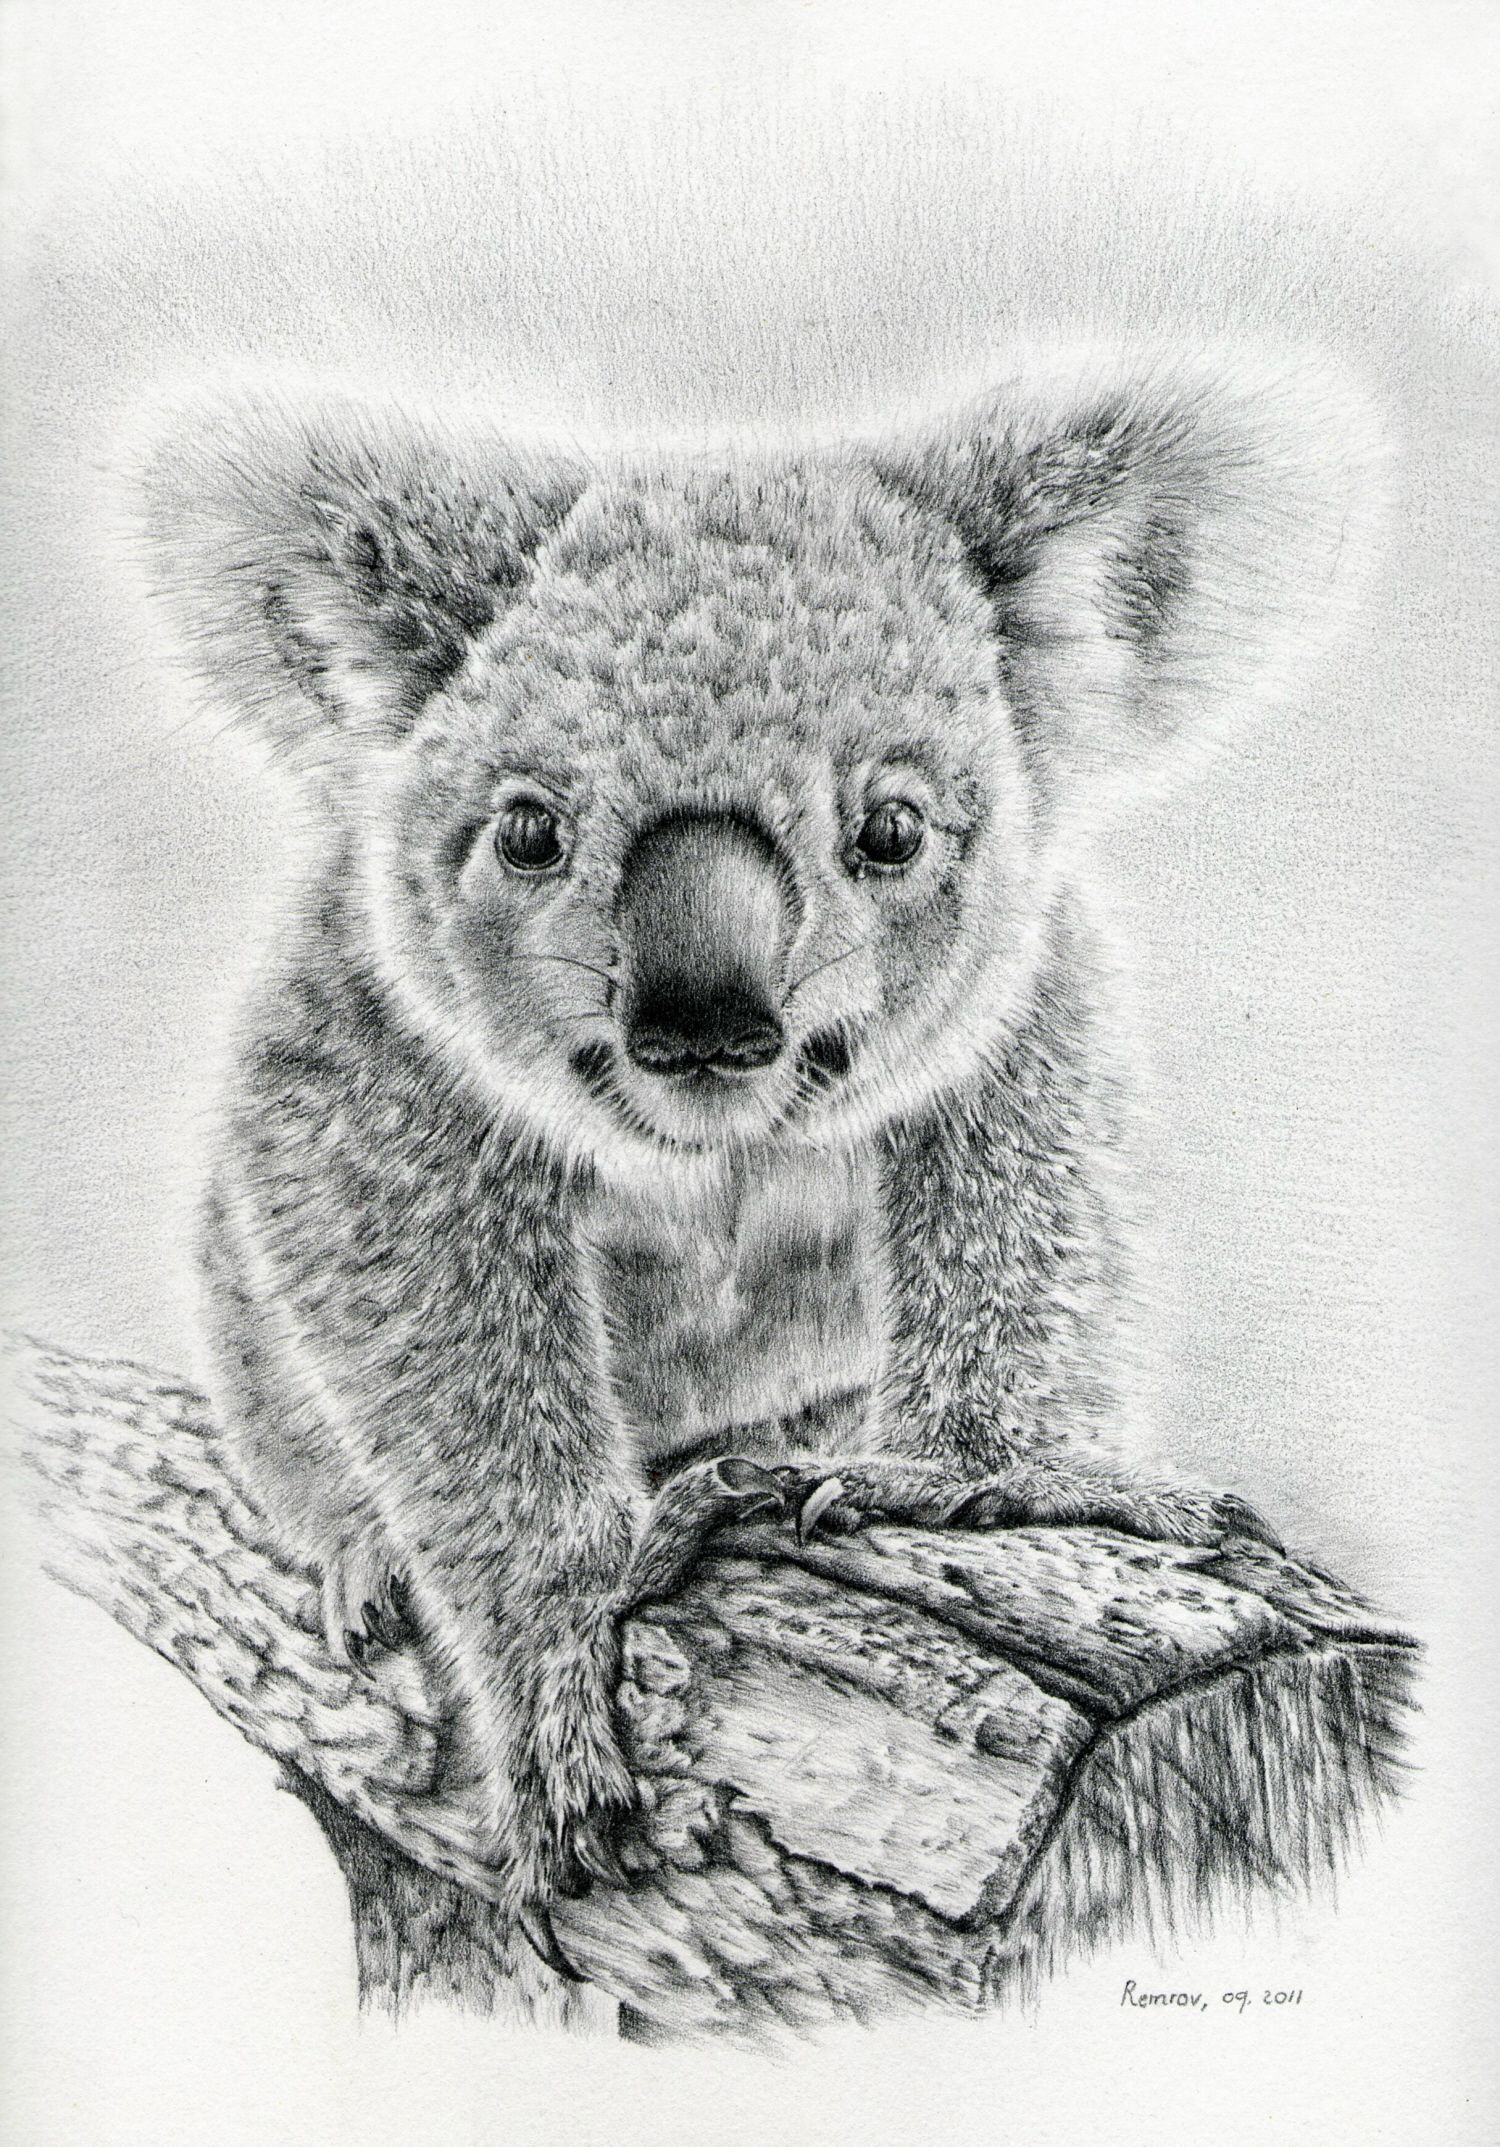 How to draw a koala pencil in stages